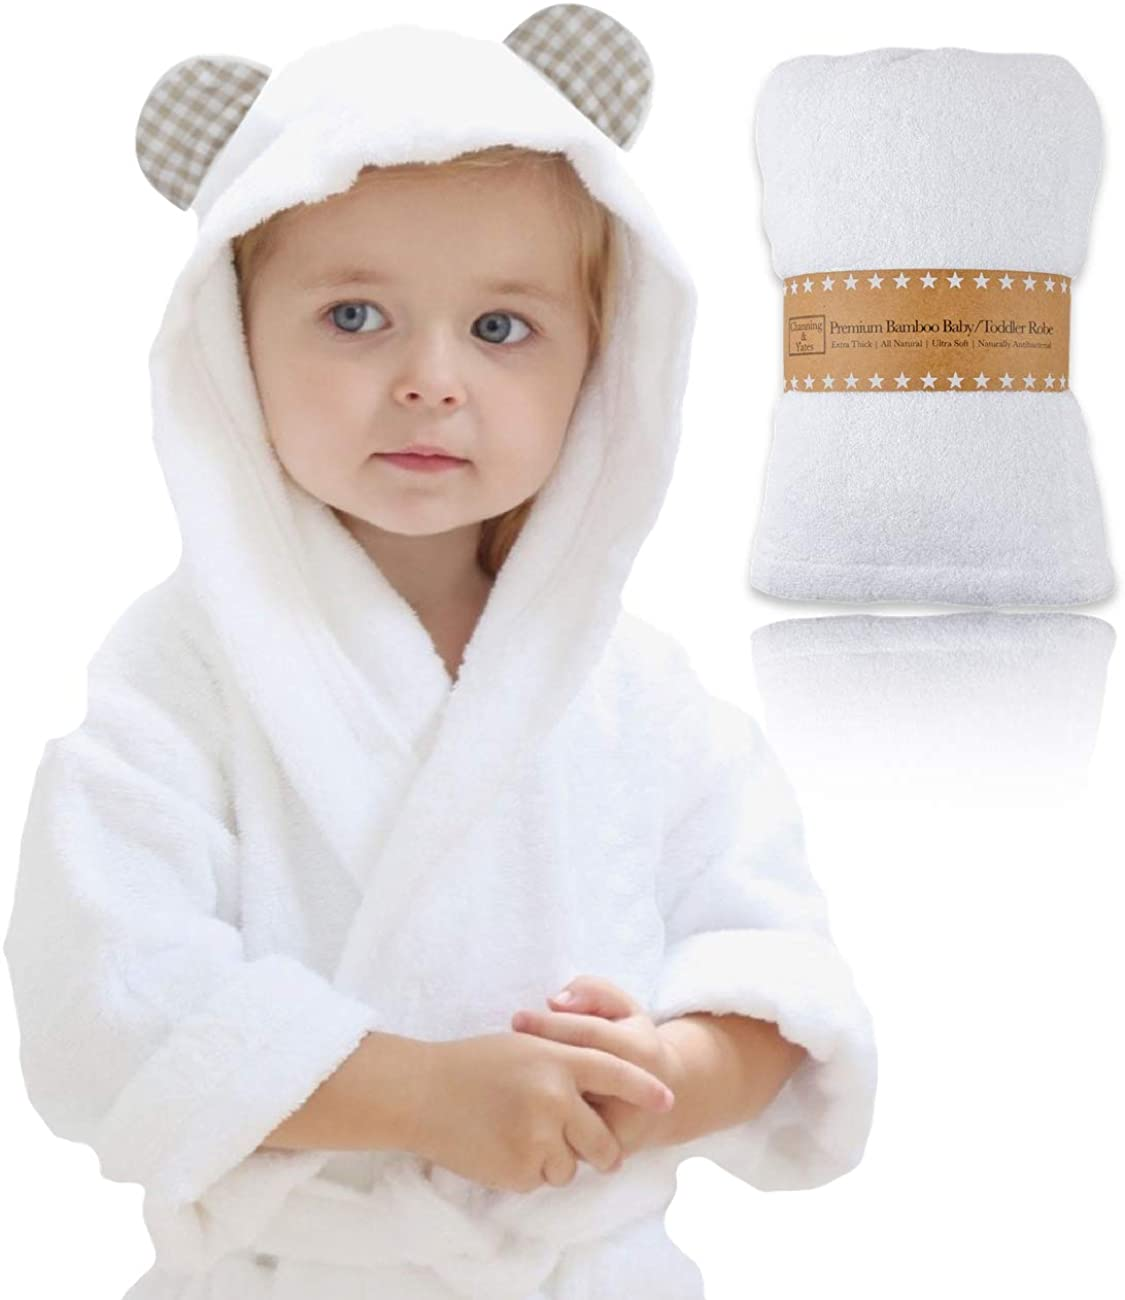 Channing & Yates - Premium Baby Robe - Toddler Robe - Organic Bamboo Hooded Bathrobe Towel - Thick & Soft (Beige): Clothing